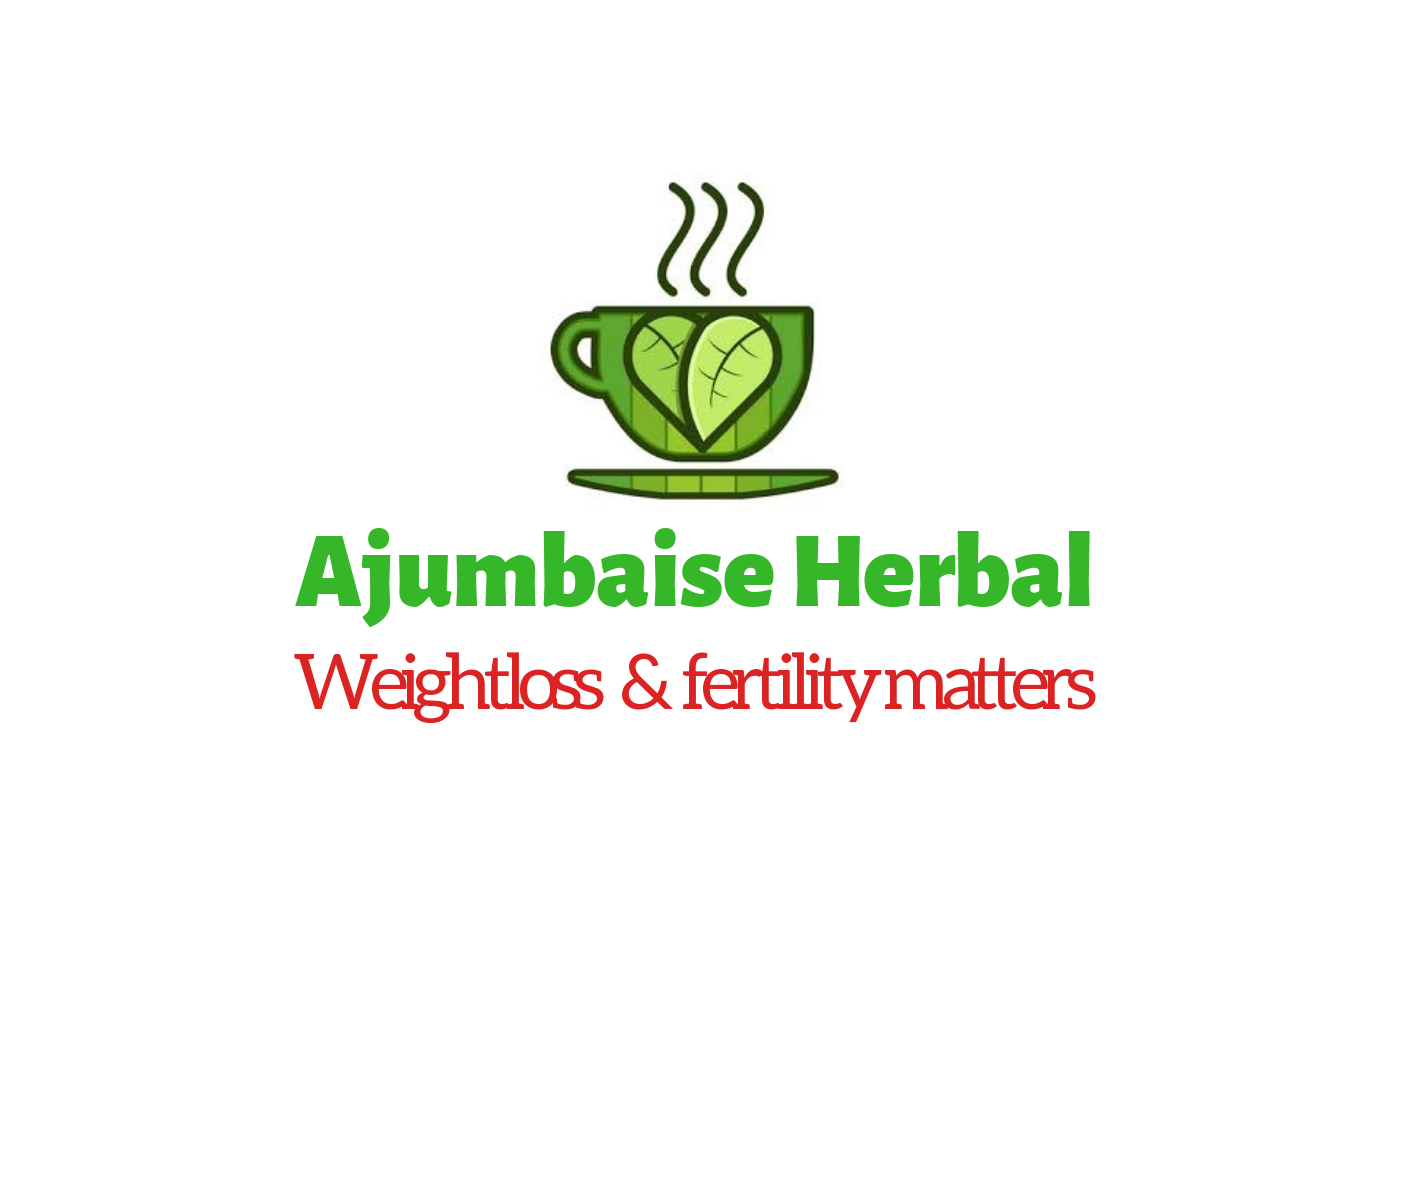 Aju Mbaise Herbal